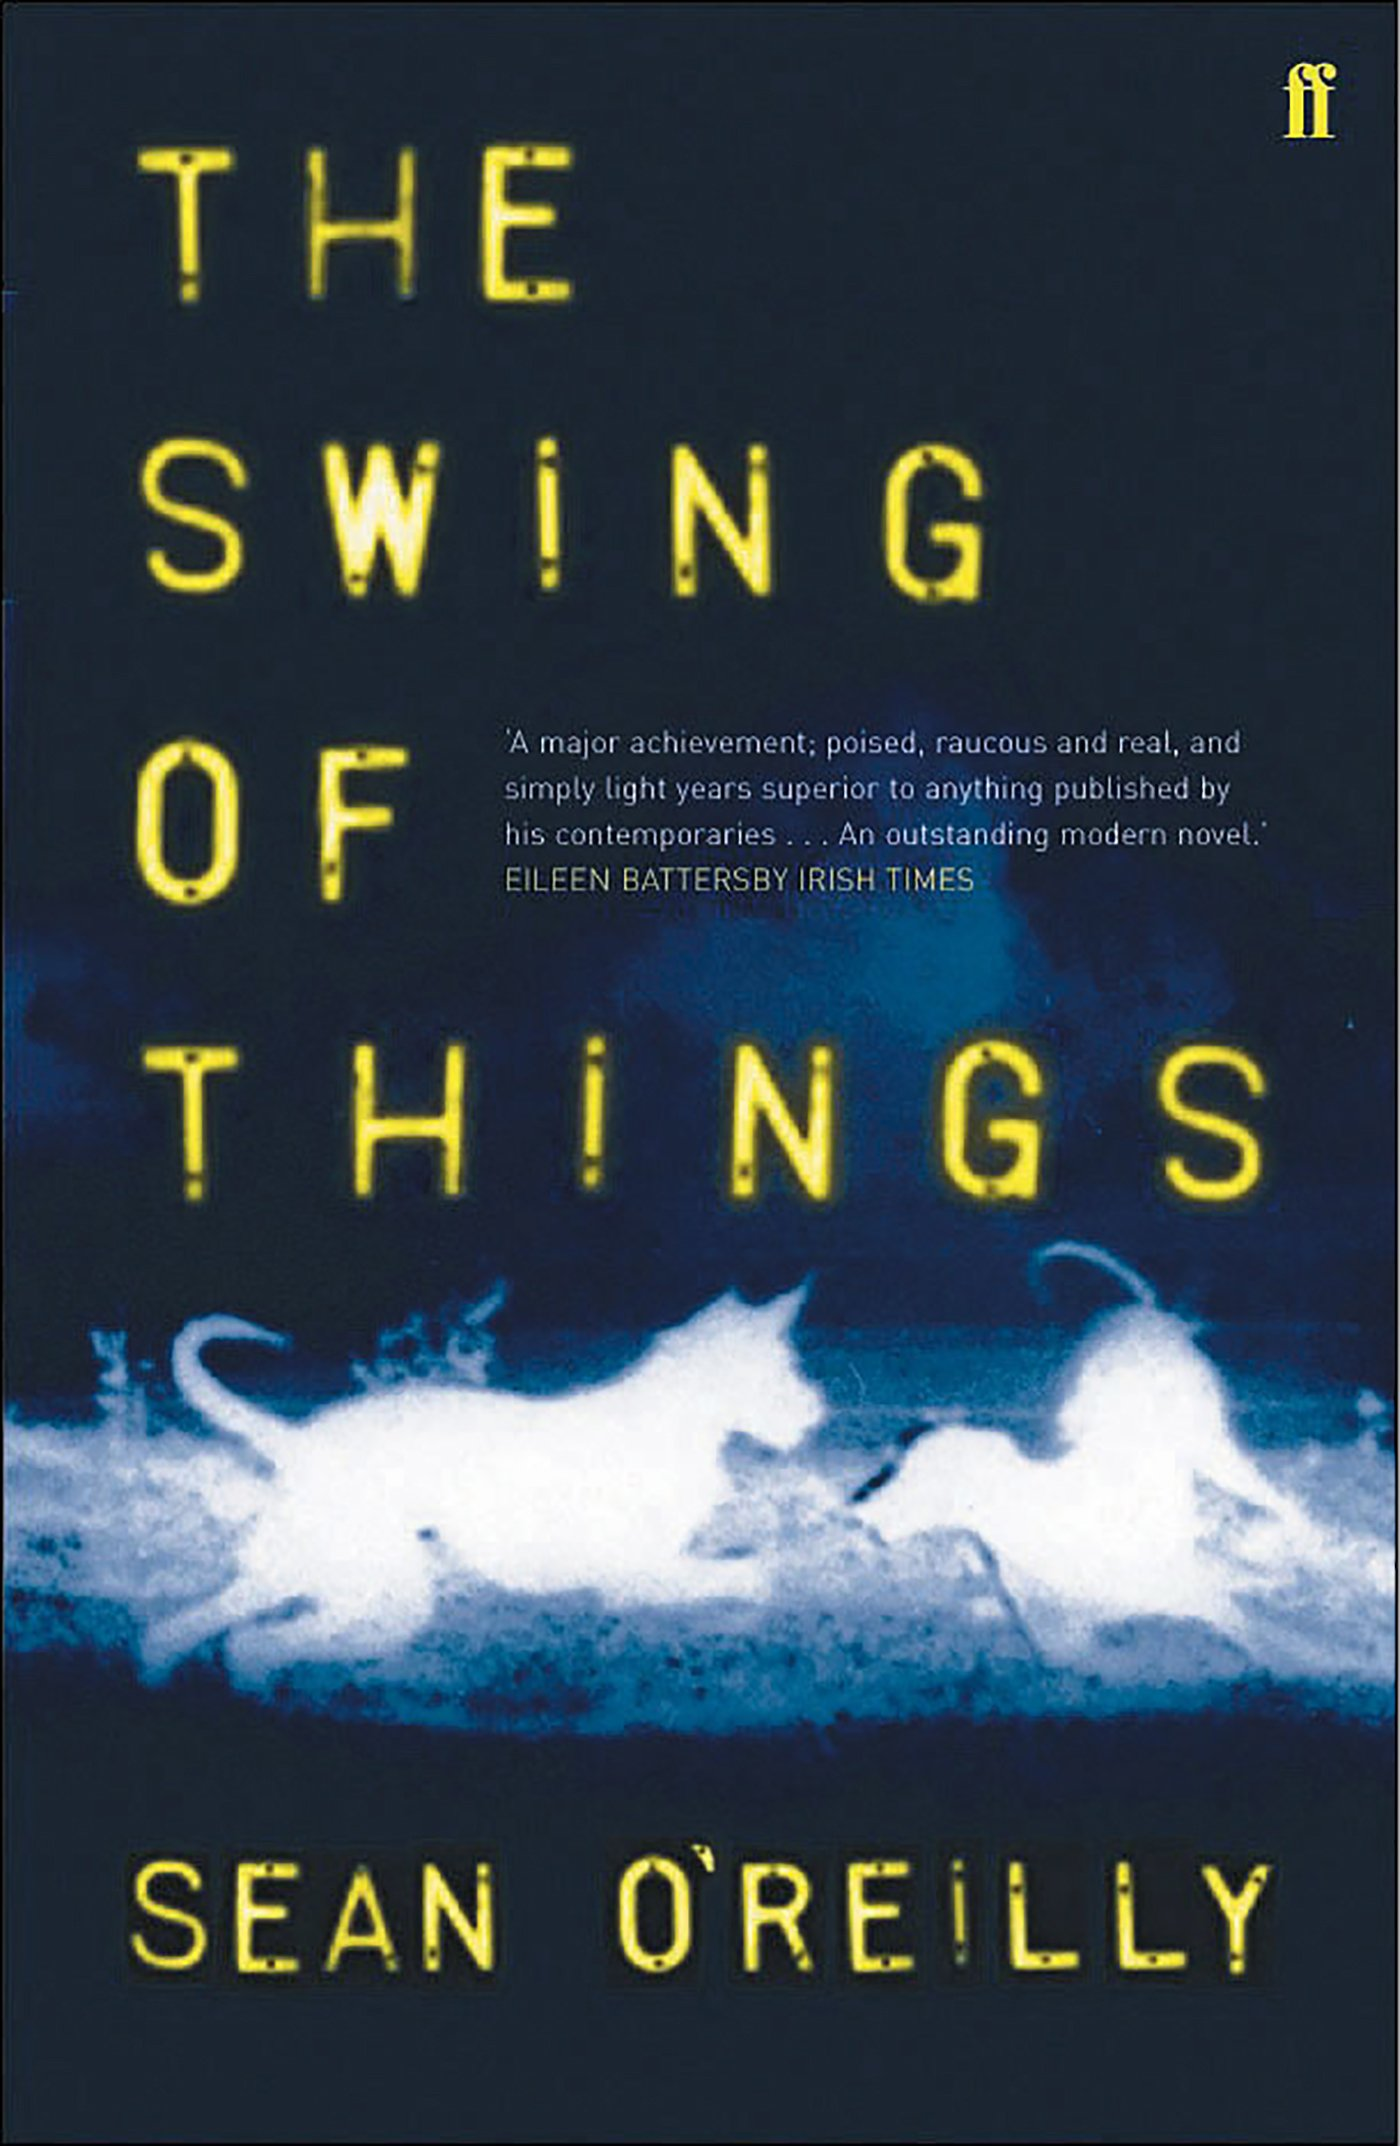 a83ed93f01b4 The Swing of Things  Amazon.co.uk  Sean O Reilly  9780571221325  Books